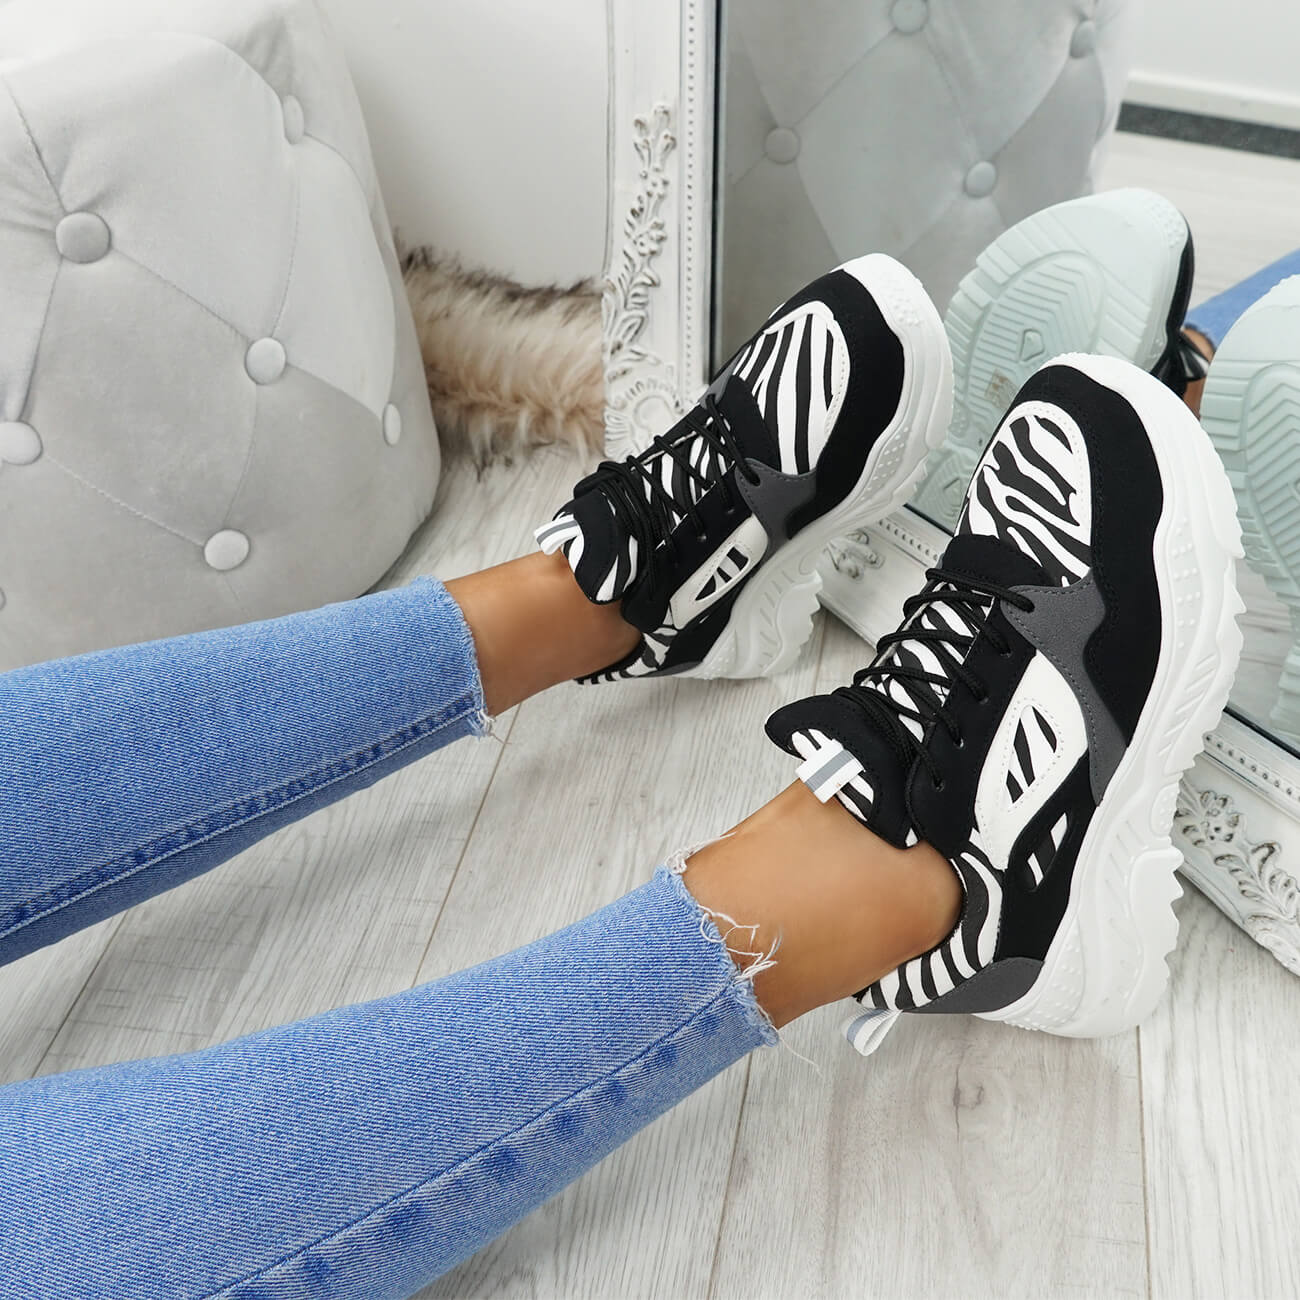 WOMENS-LADIES-LACE-UP-ZEBRA-PATTERN-CHUNKY-TRAINERS-SNEAKERS-PLIMSOLL-SHOES thumbnail 8